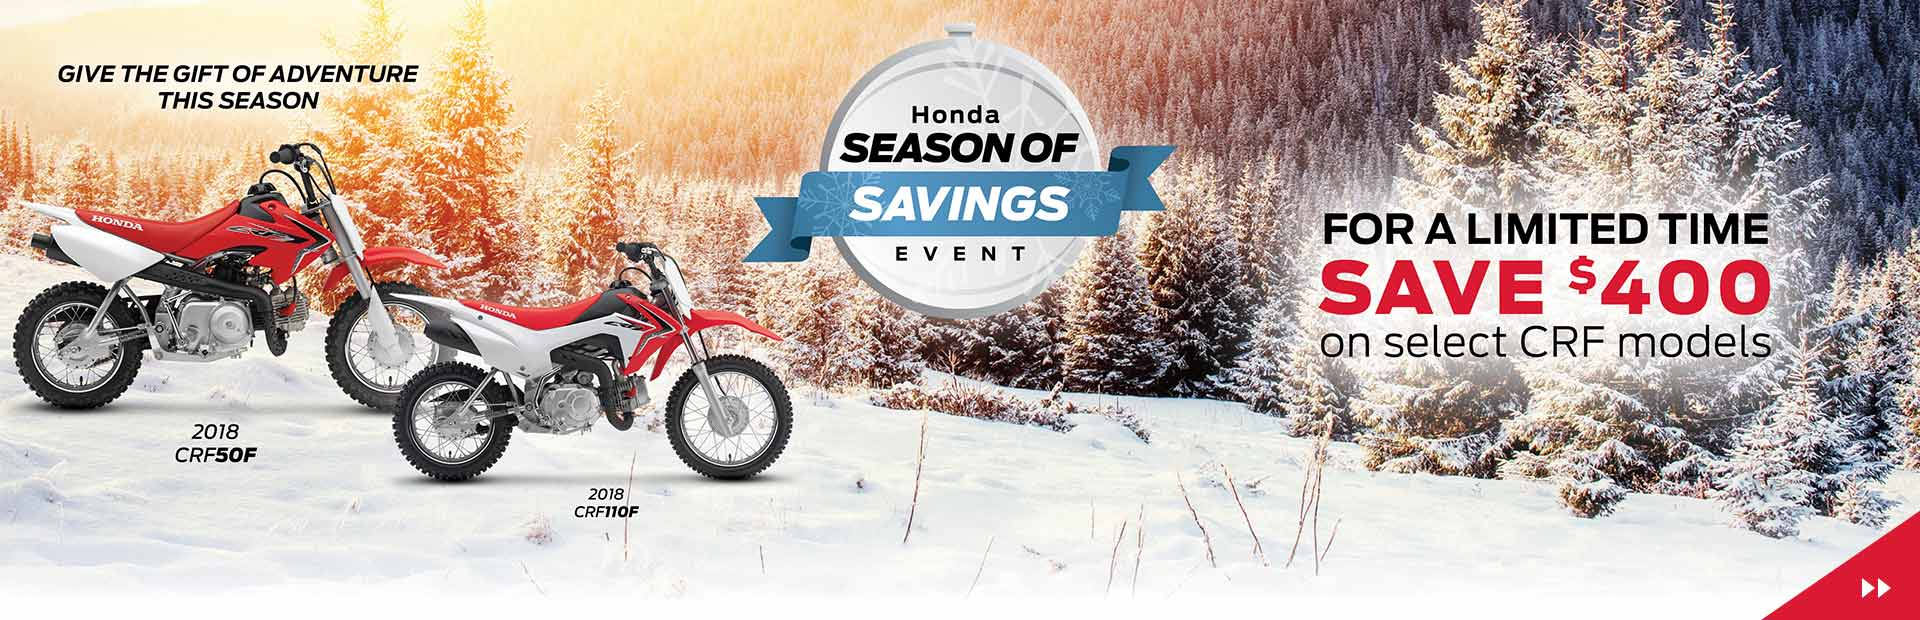 Honda Season of Savings Event - For a Limited Time SAVE $400 on select CRF models!